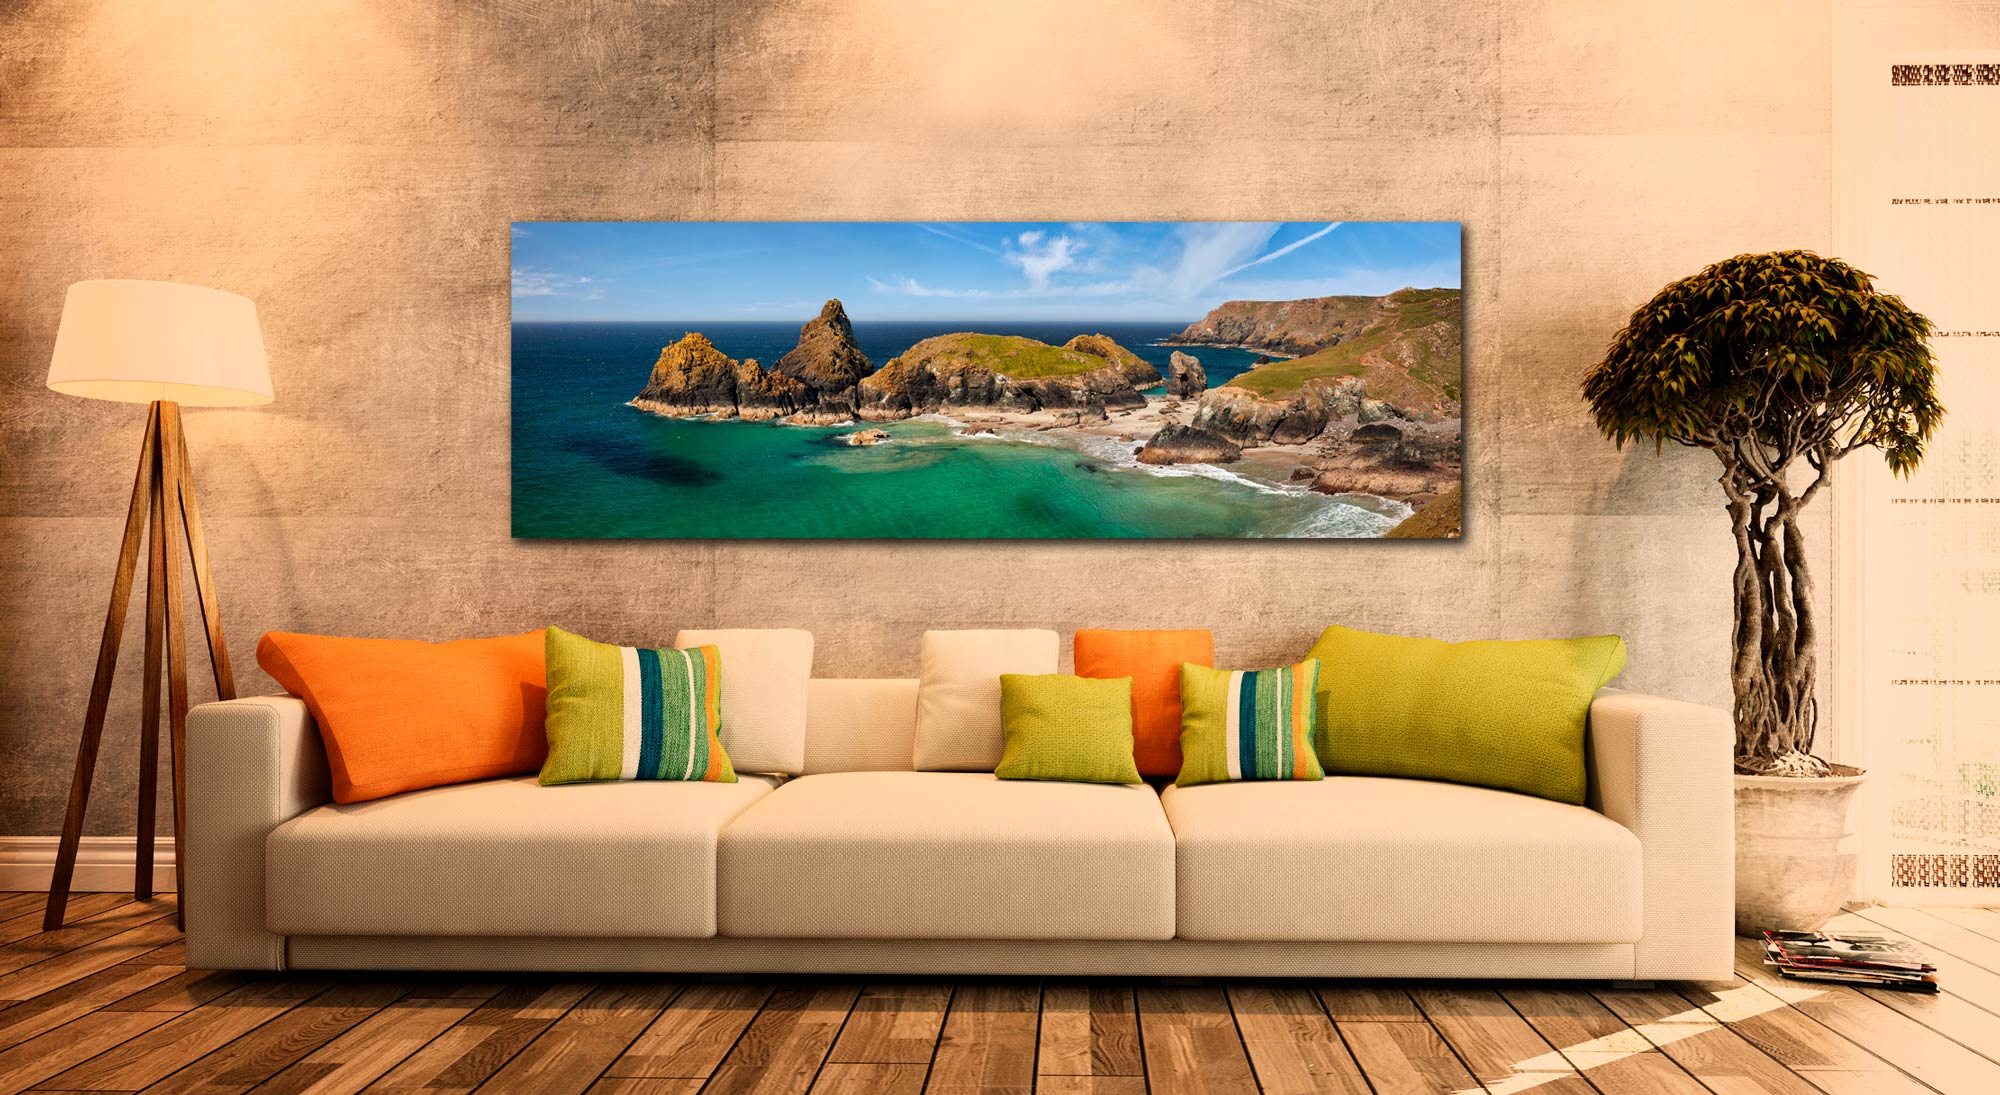 The tropical waters of Kynance Cove on the Lizard. The islands of The Bishop, Gull Rock and Asparagus Island - Print Aluminium Backing With Acrylic Glazing on Wall